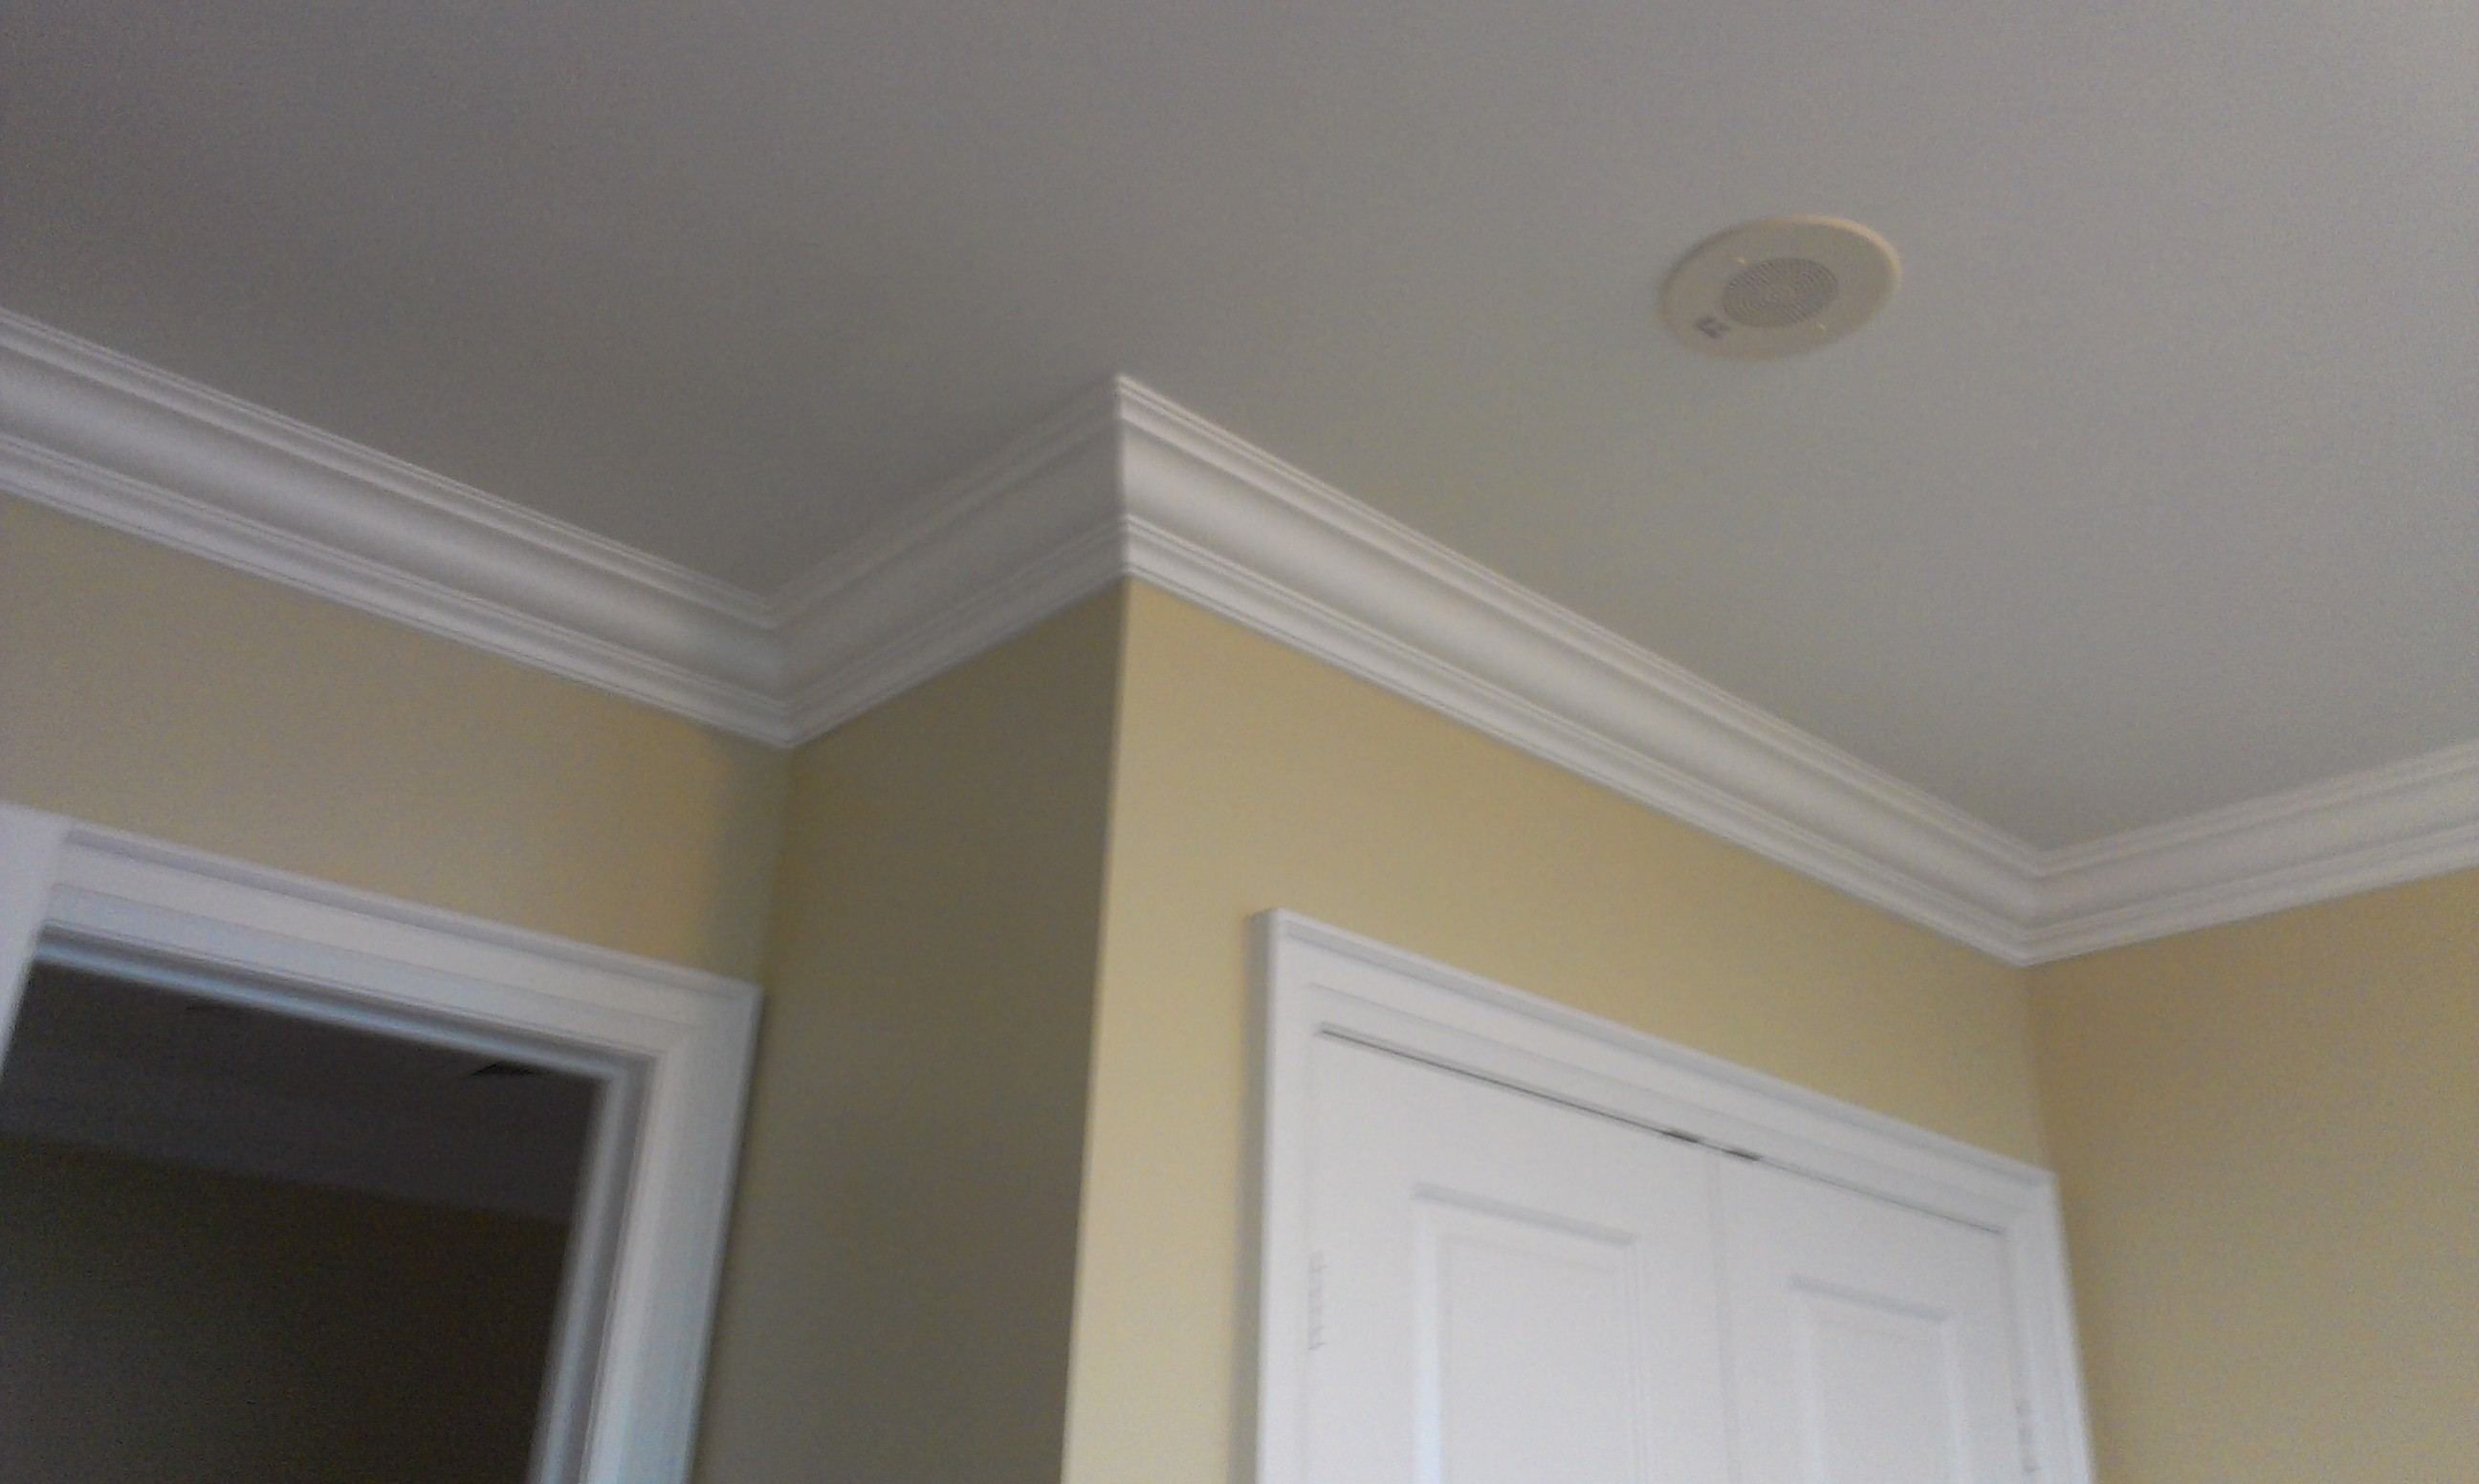 Bedroom Ceiling Moulding Perfect Crown Moulding In Bedroom Odd Job Handyman